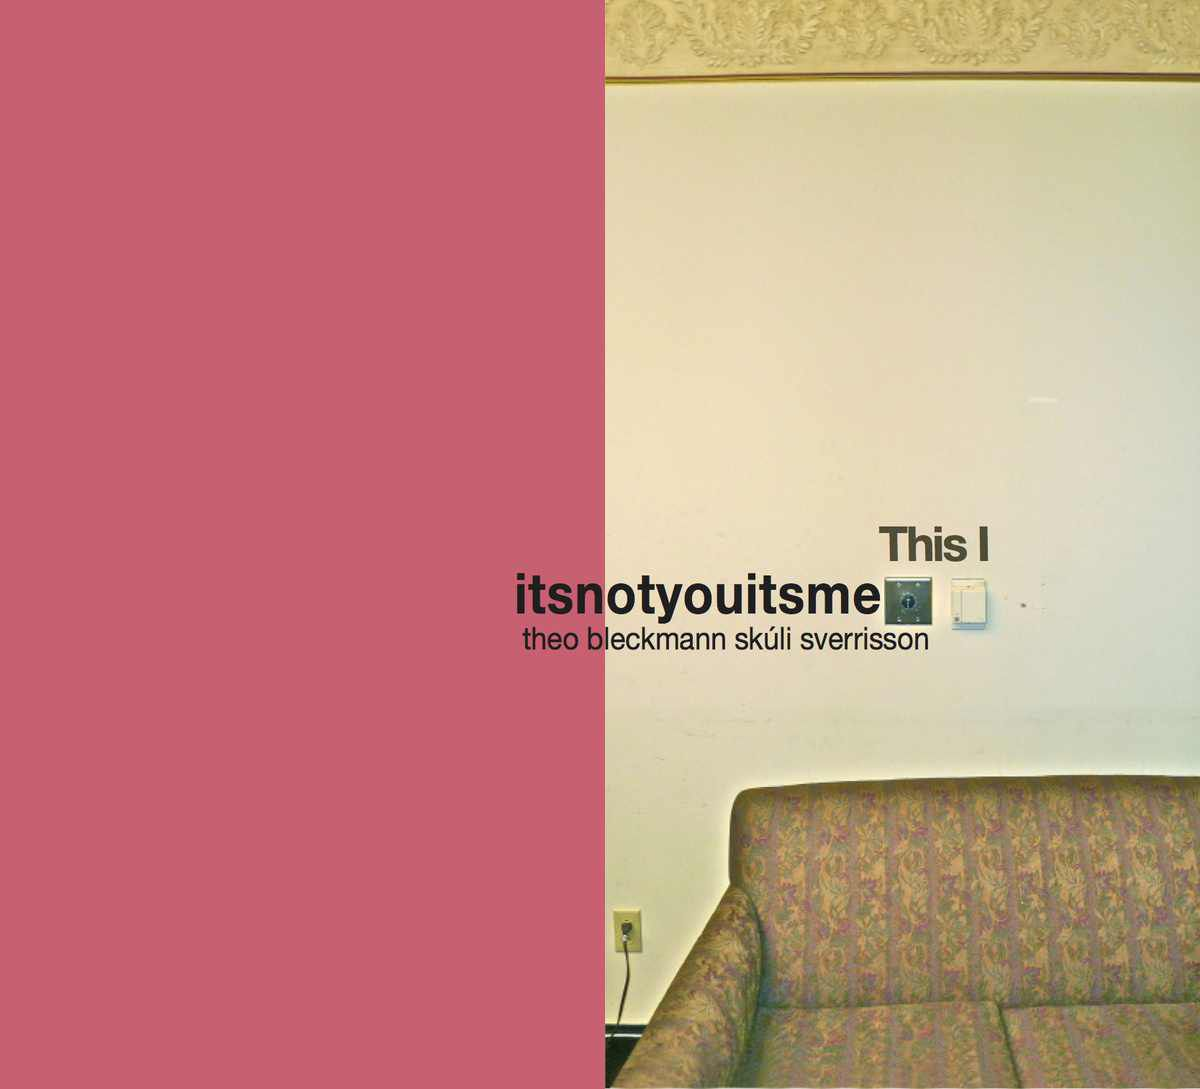 itsnotyouitsme - This I